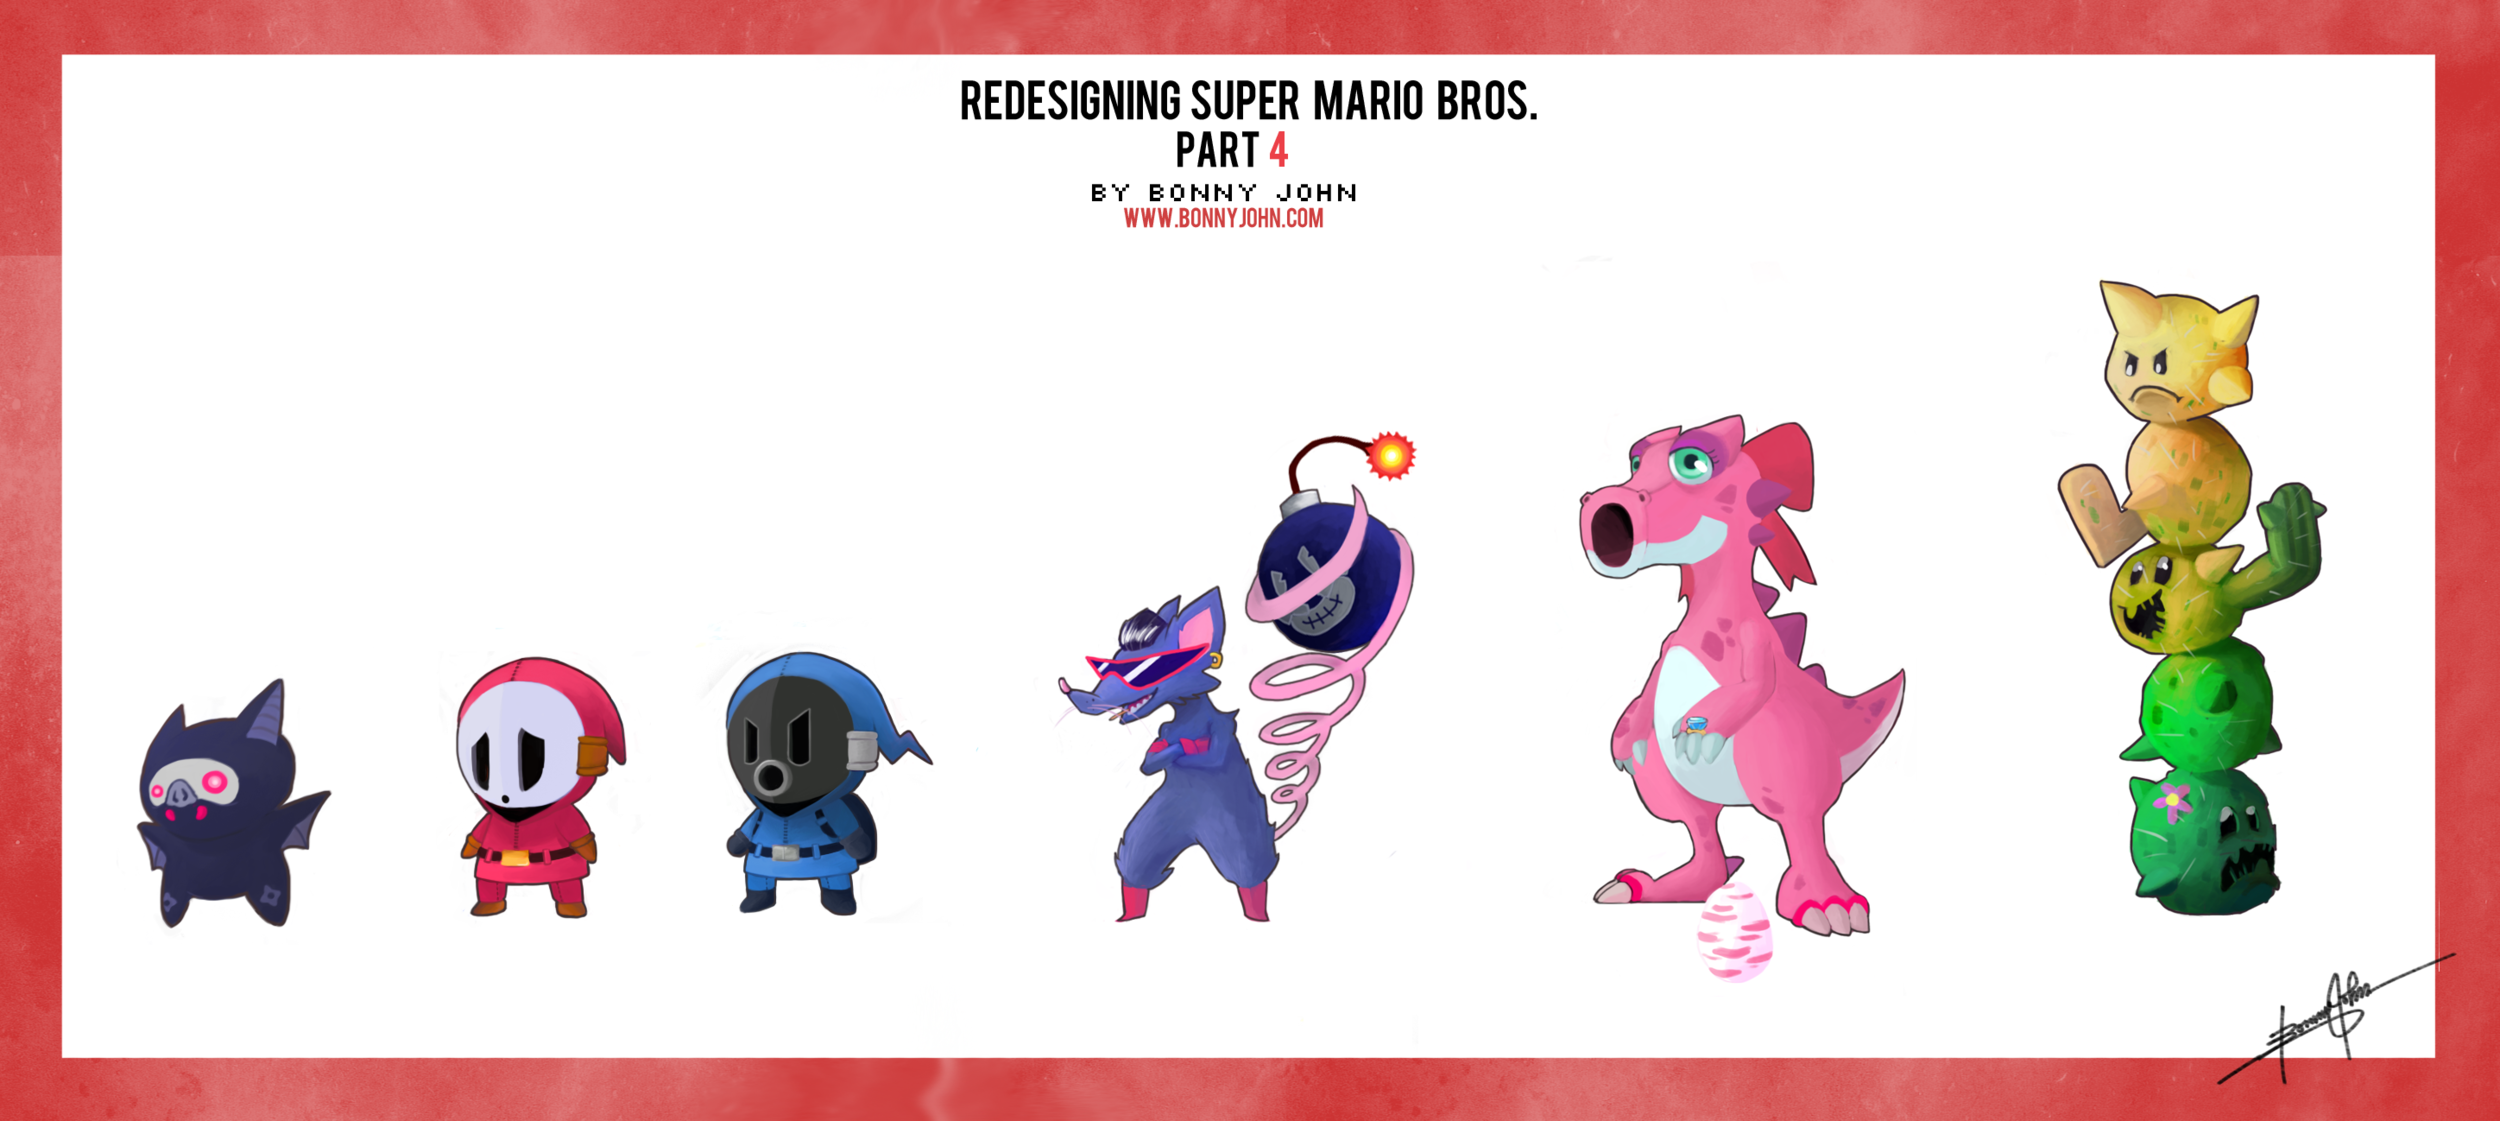 Redesigning Super Mario Part 4 by Bonny John.png